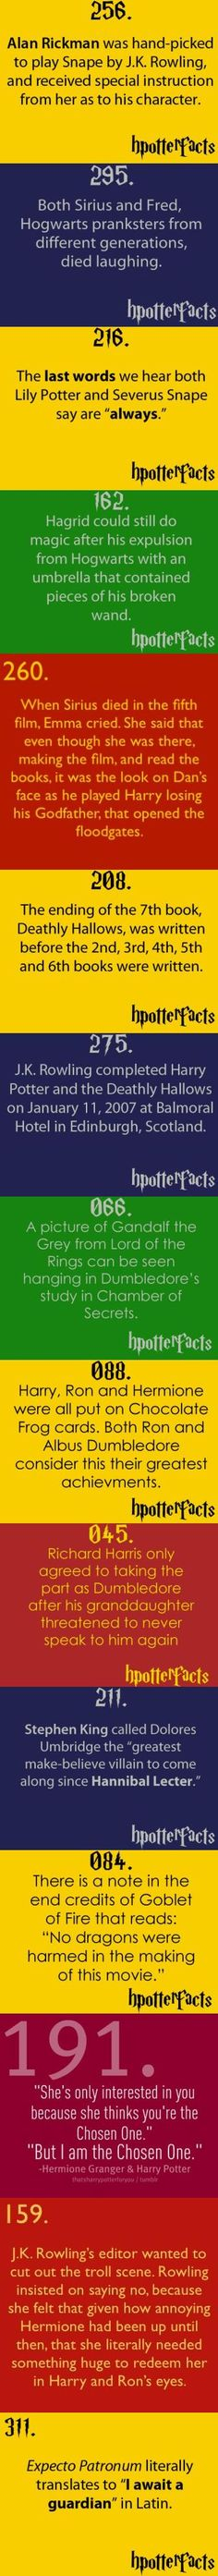 HP facts, I knew some of these but others were really cool